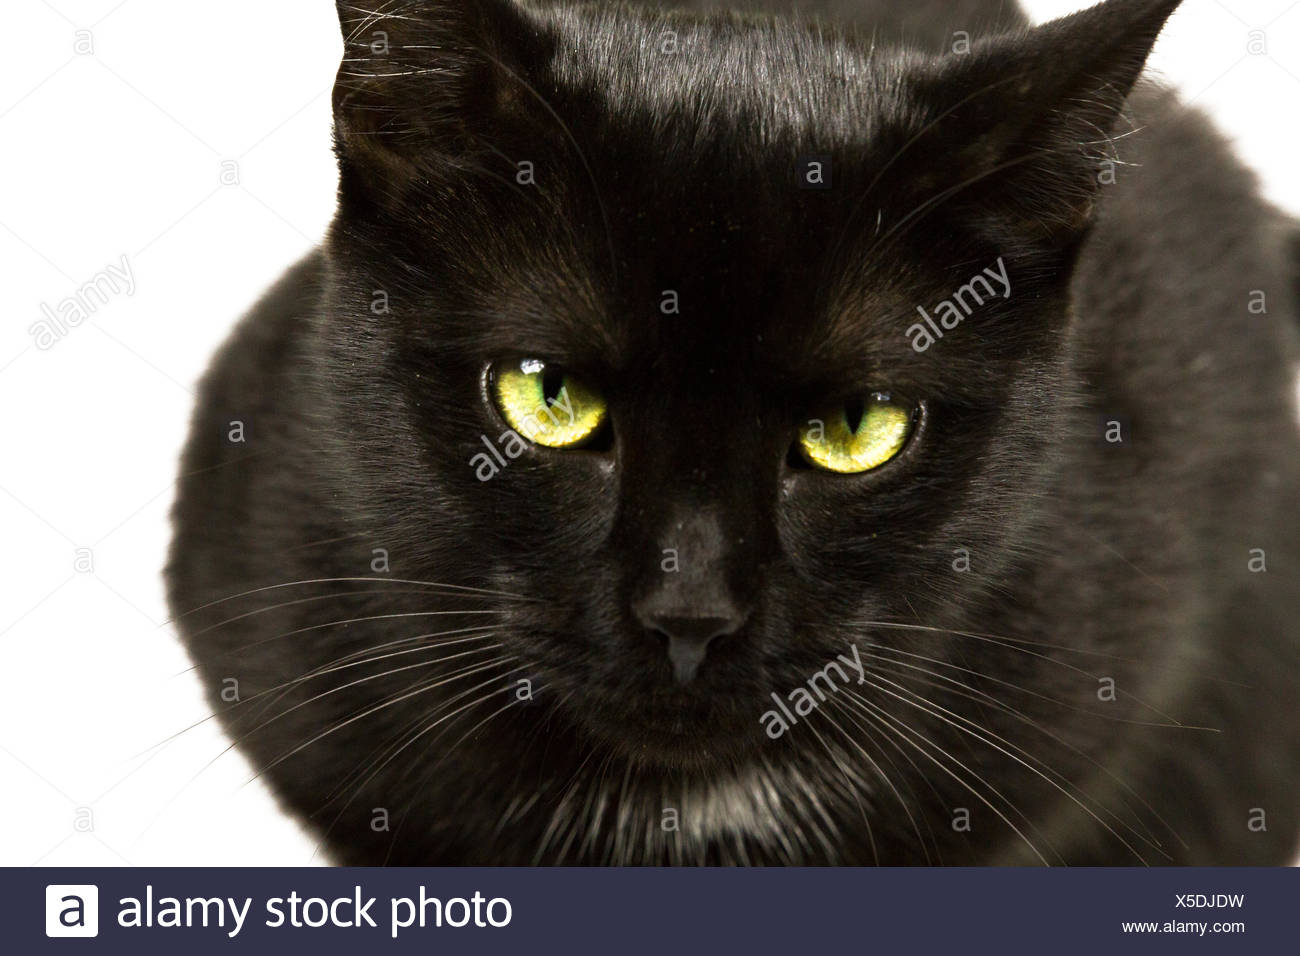 Black cat eyes 5 - Stock Image